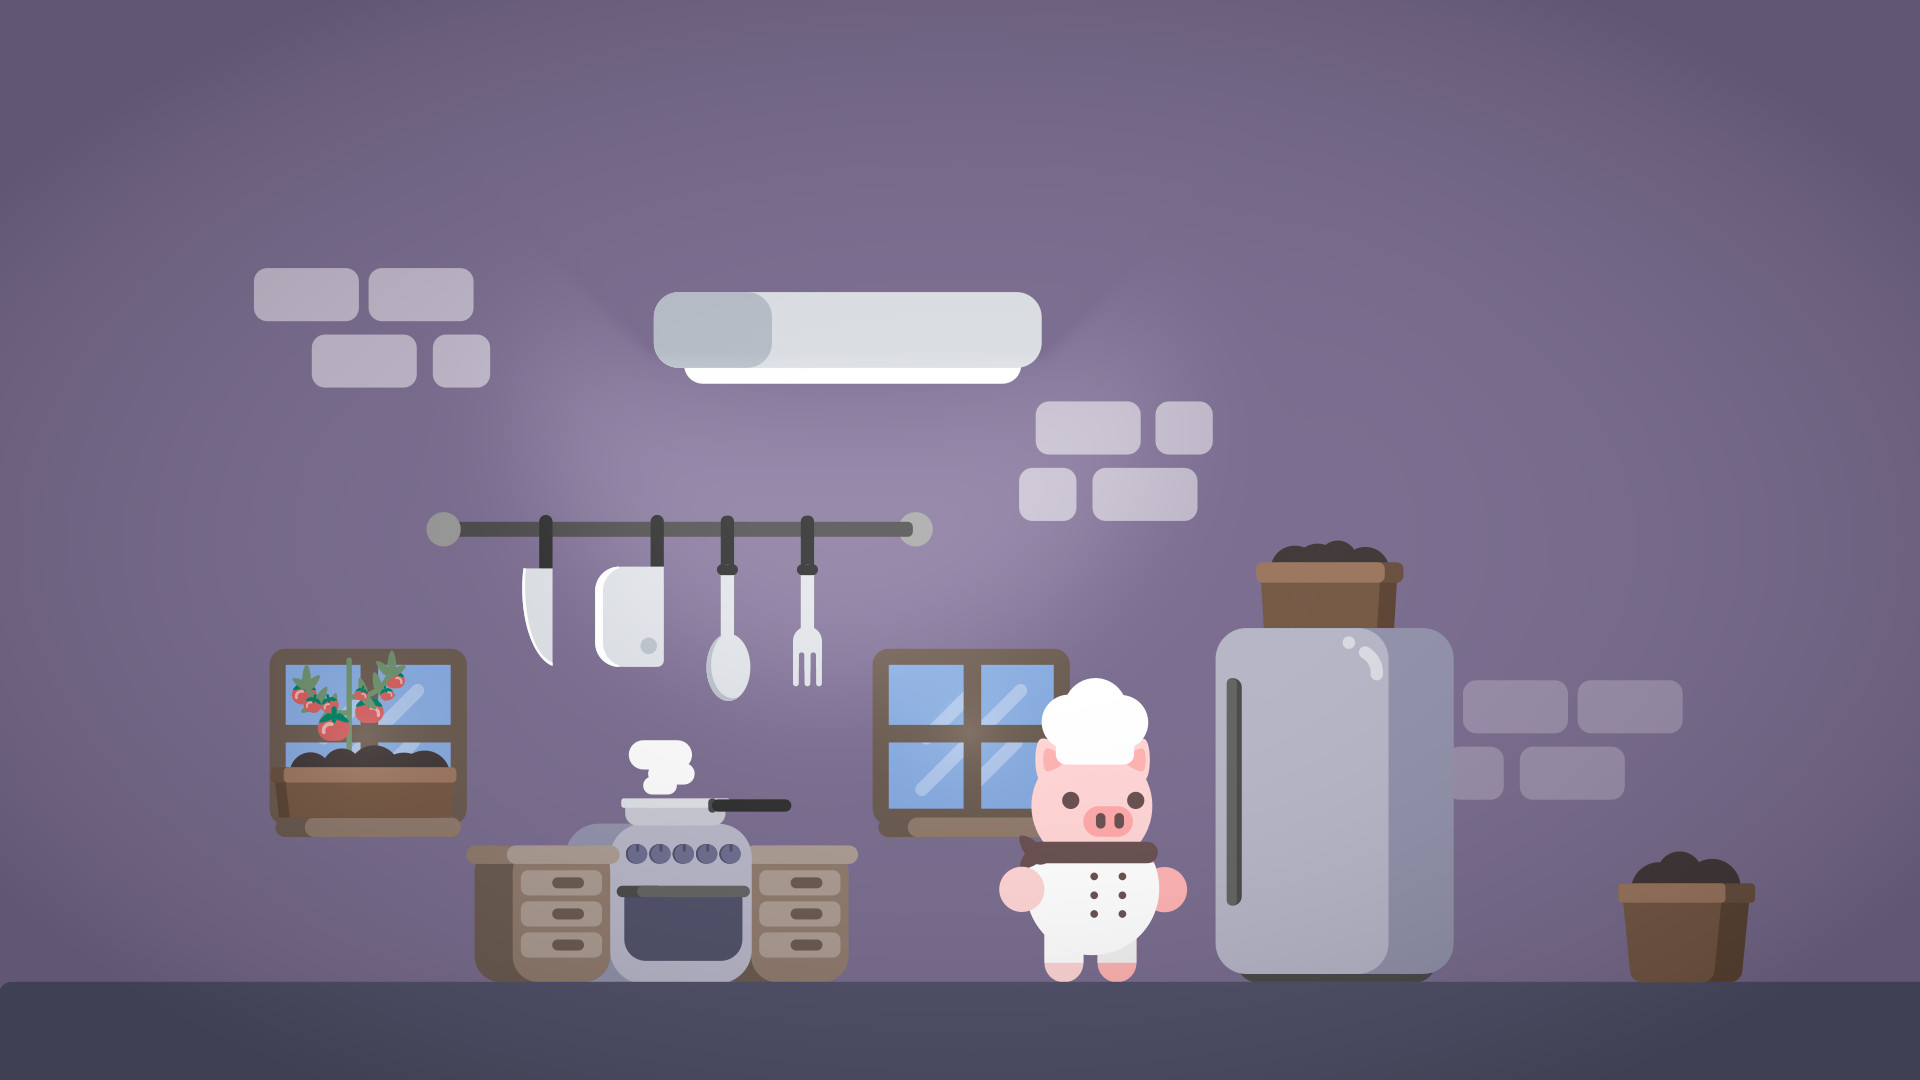 A pig dressed as a cook in a kitchen